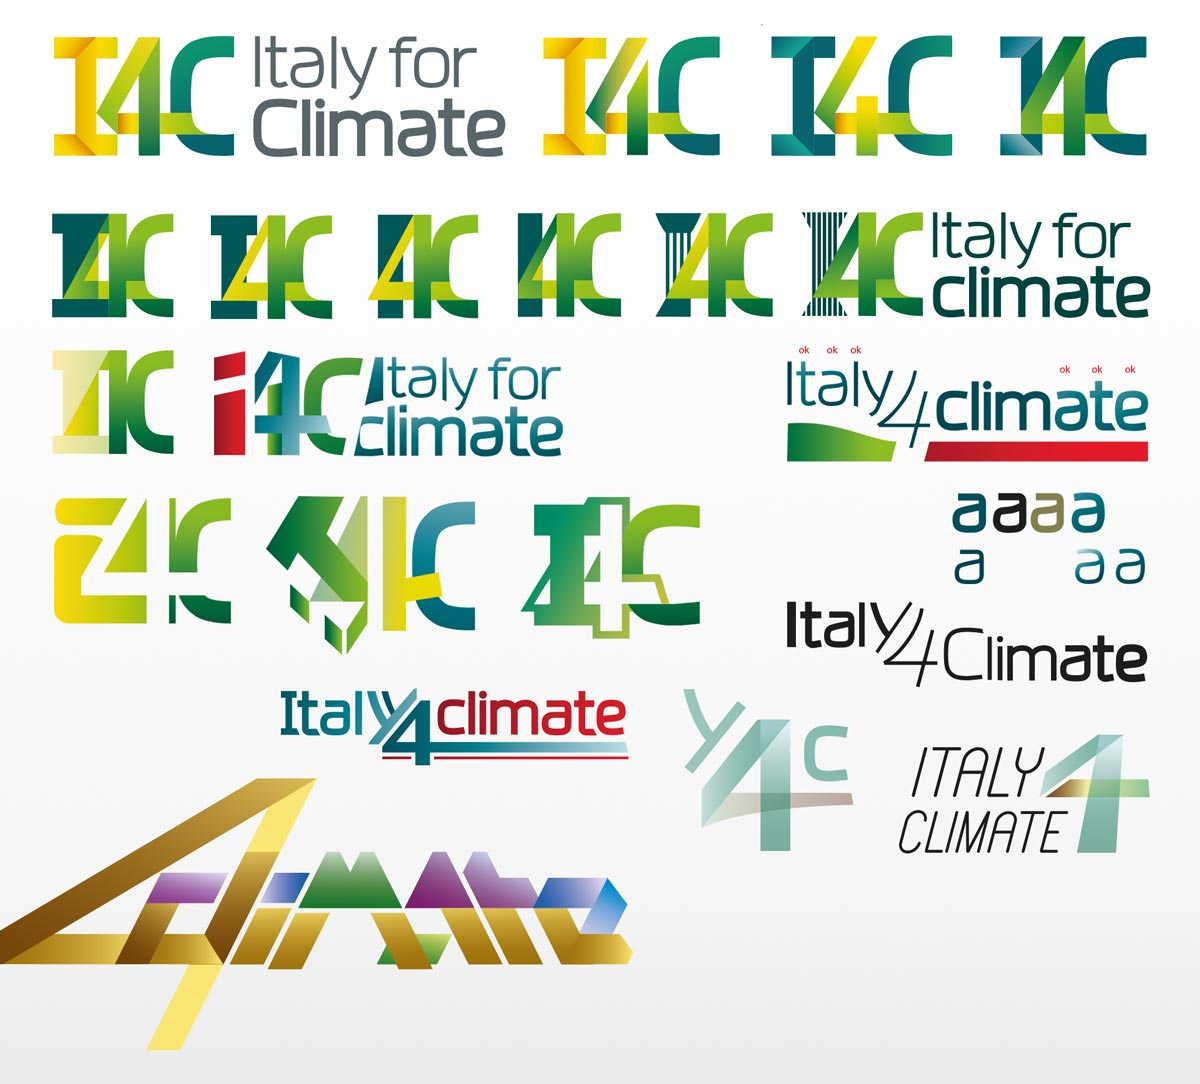 italy for climate 3